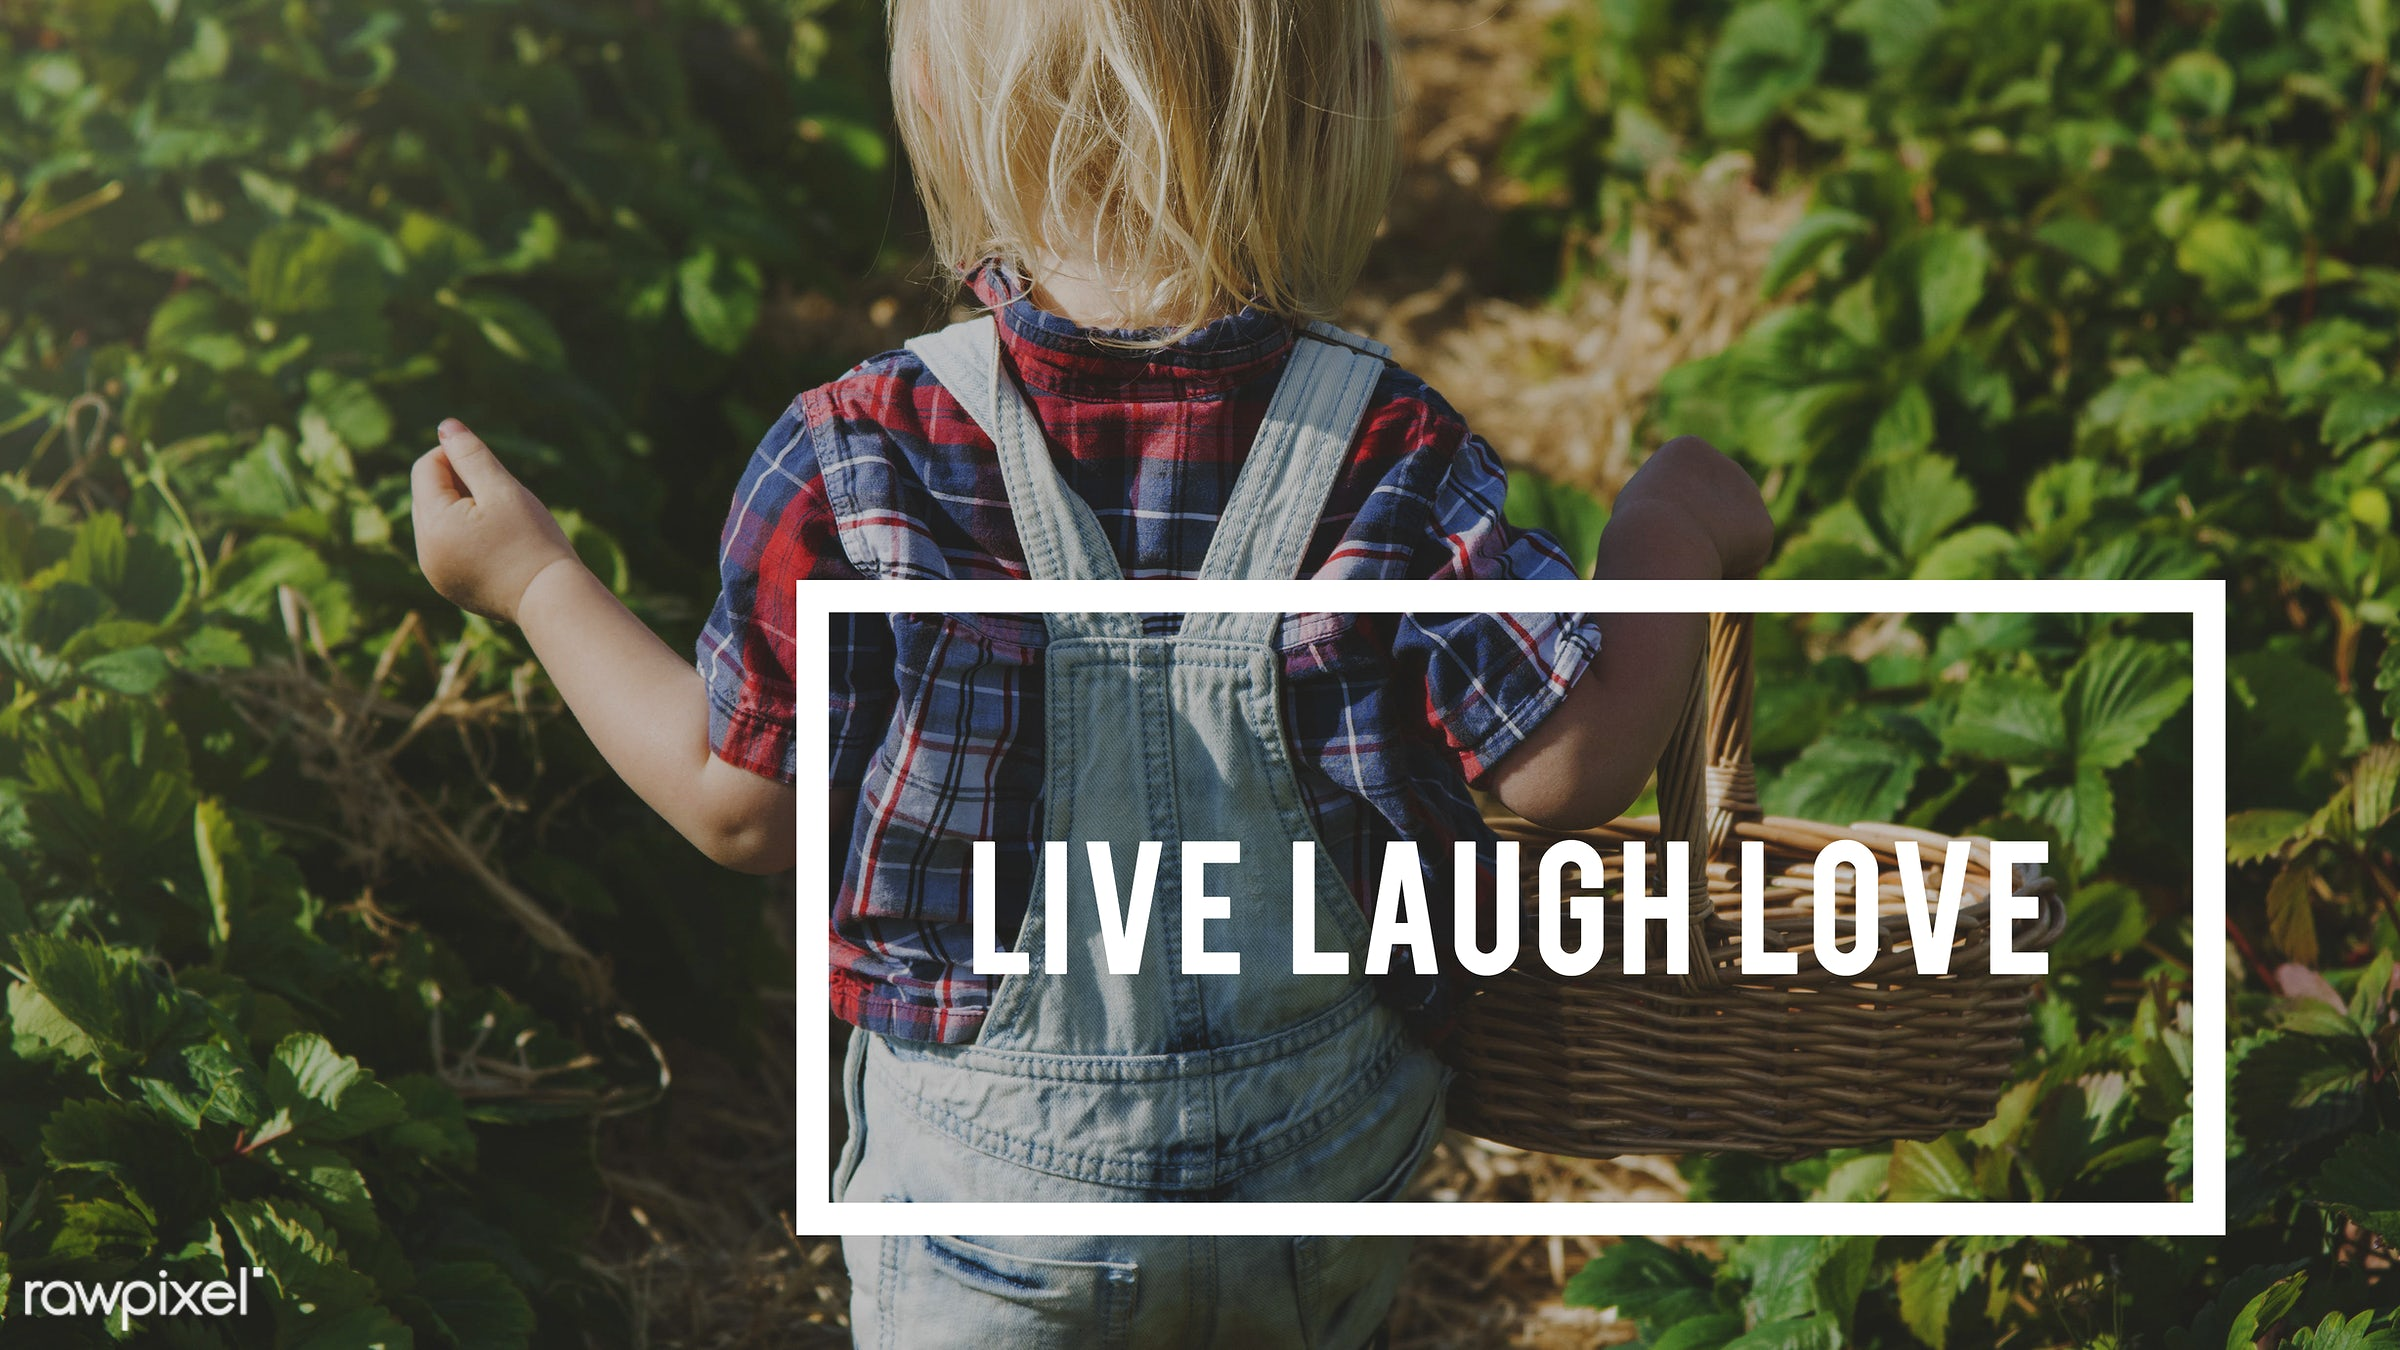 action, attitude, basket, blonde, boy, caucasian, change, dare, don't be afraid to be great, dungarees, farm, freedom, fruit...